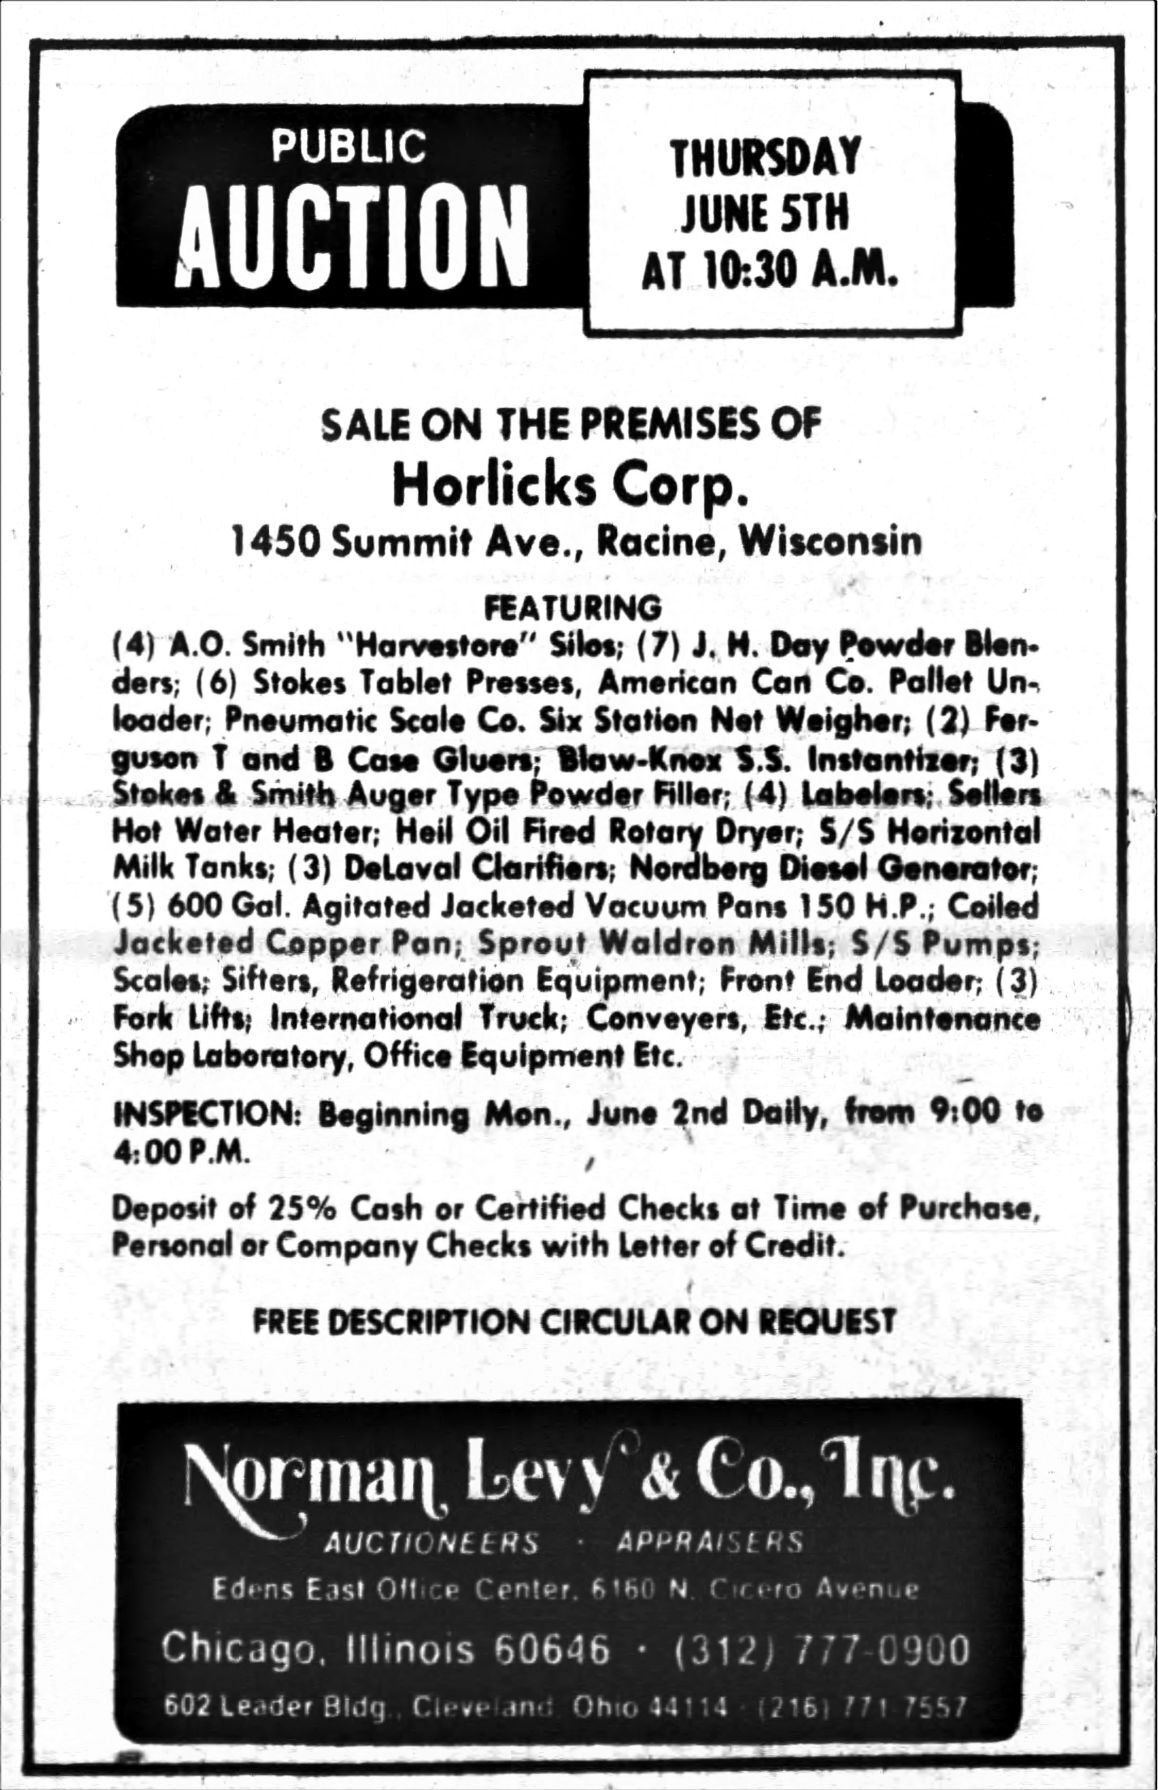 Horlick's Malted Milk - Racine plant auction ad, May 1975